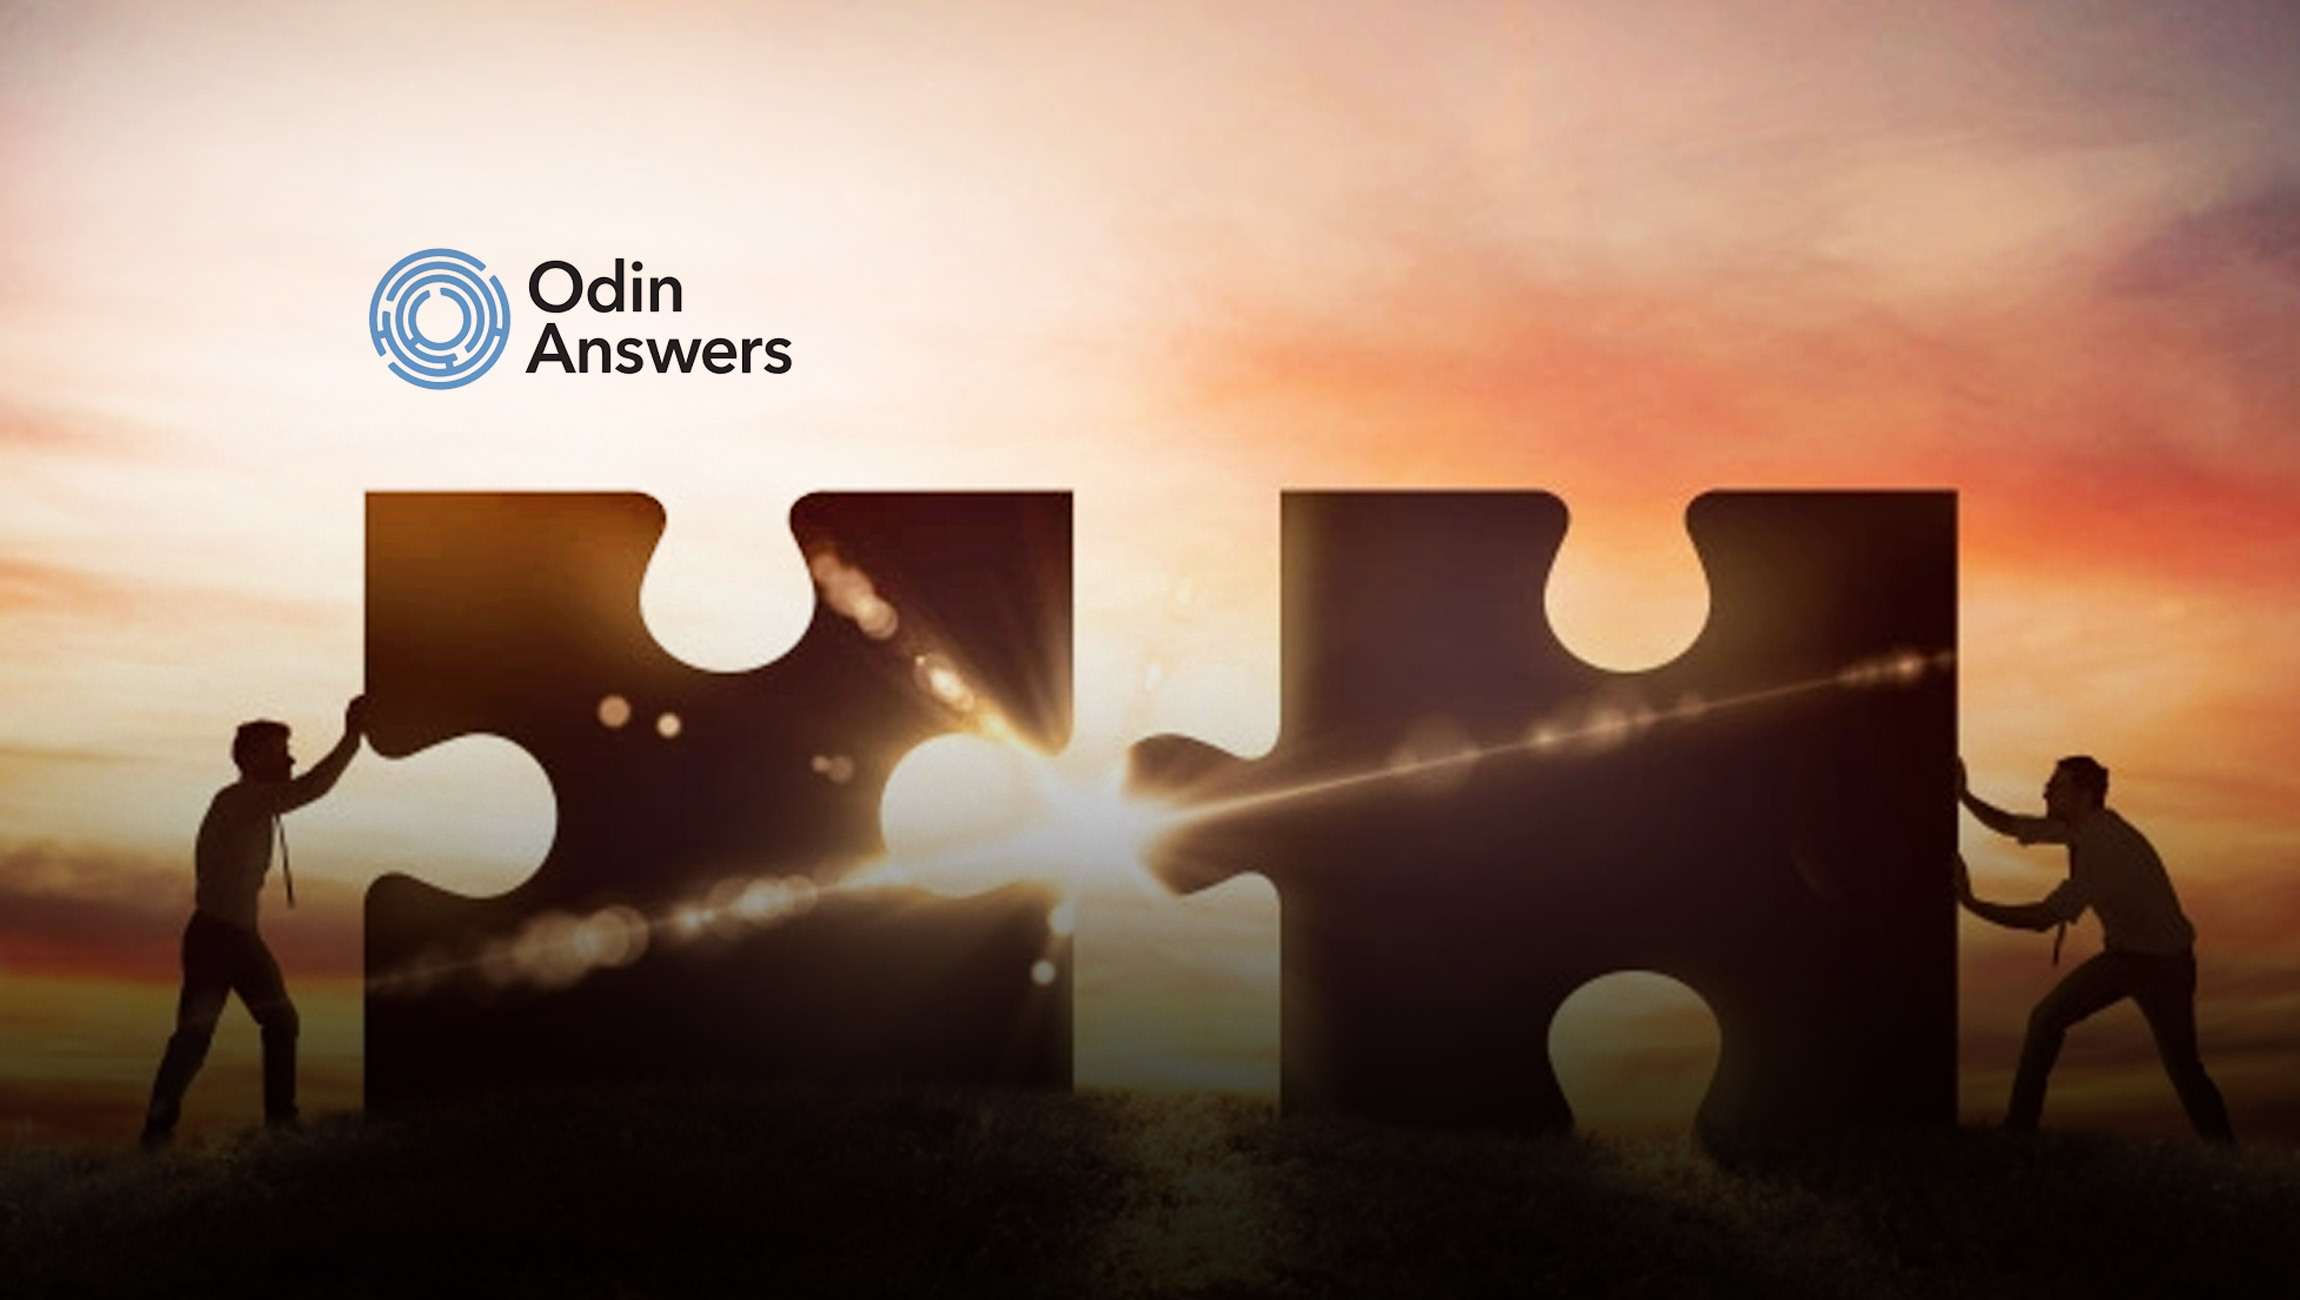 OdinAnswers-launches-on-Shopify-App-Store-with-acquisition-of-TagRobot